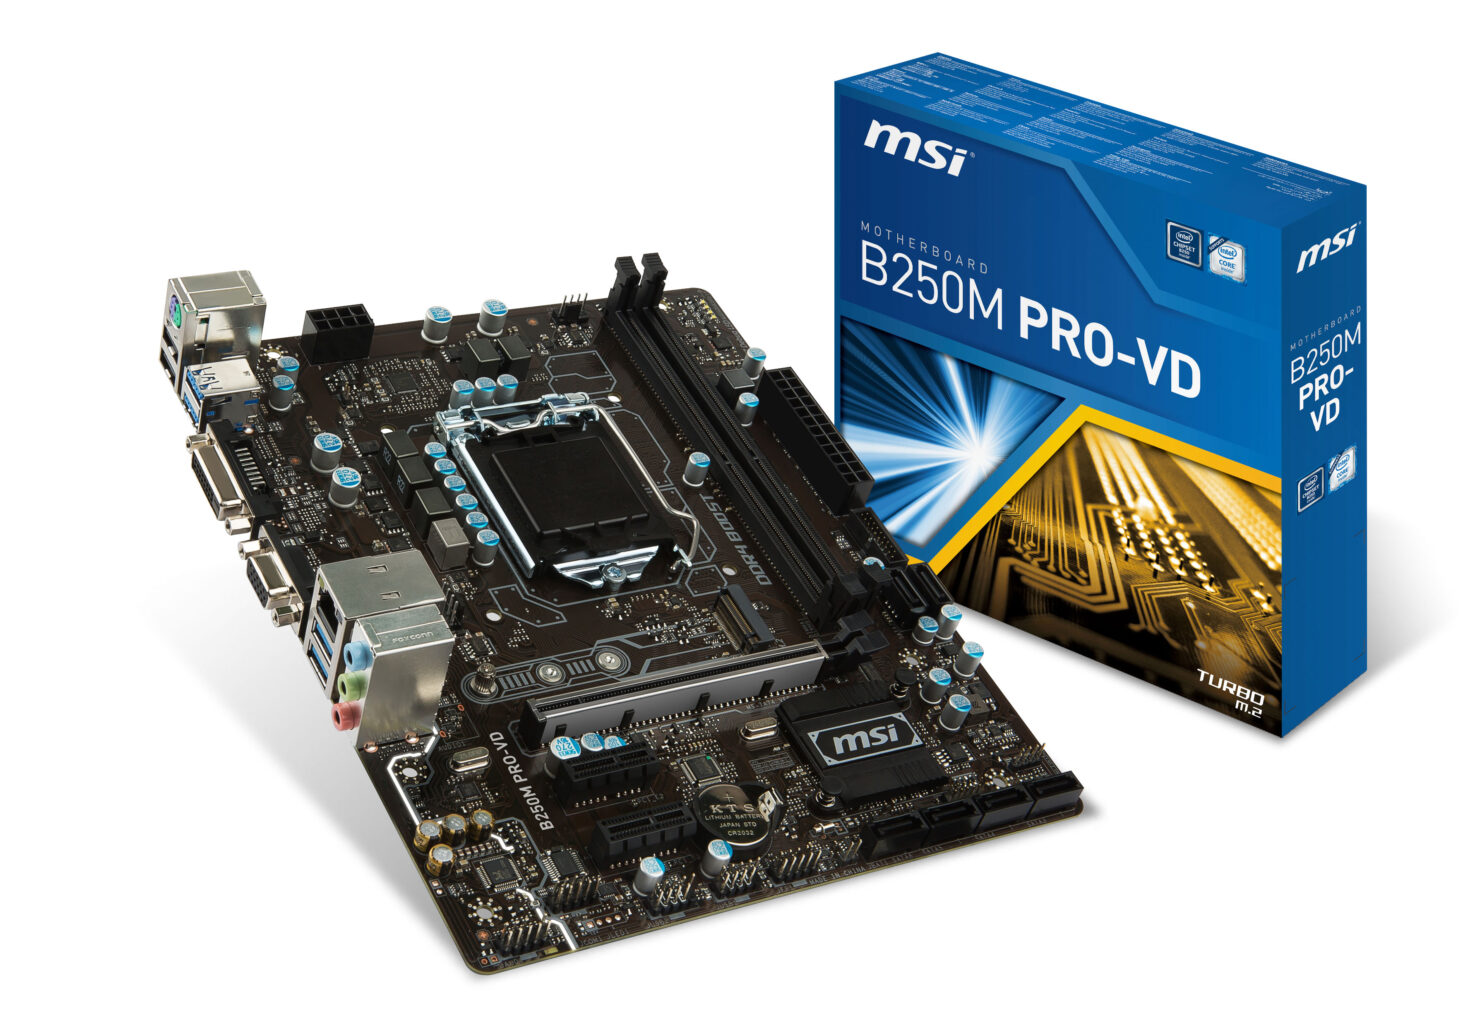 msi-b250m_pro_vd-product_picture-box